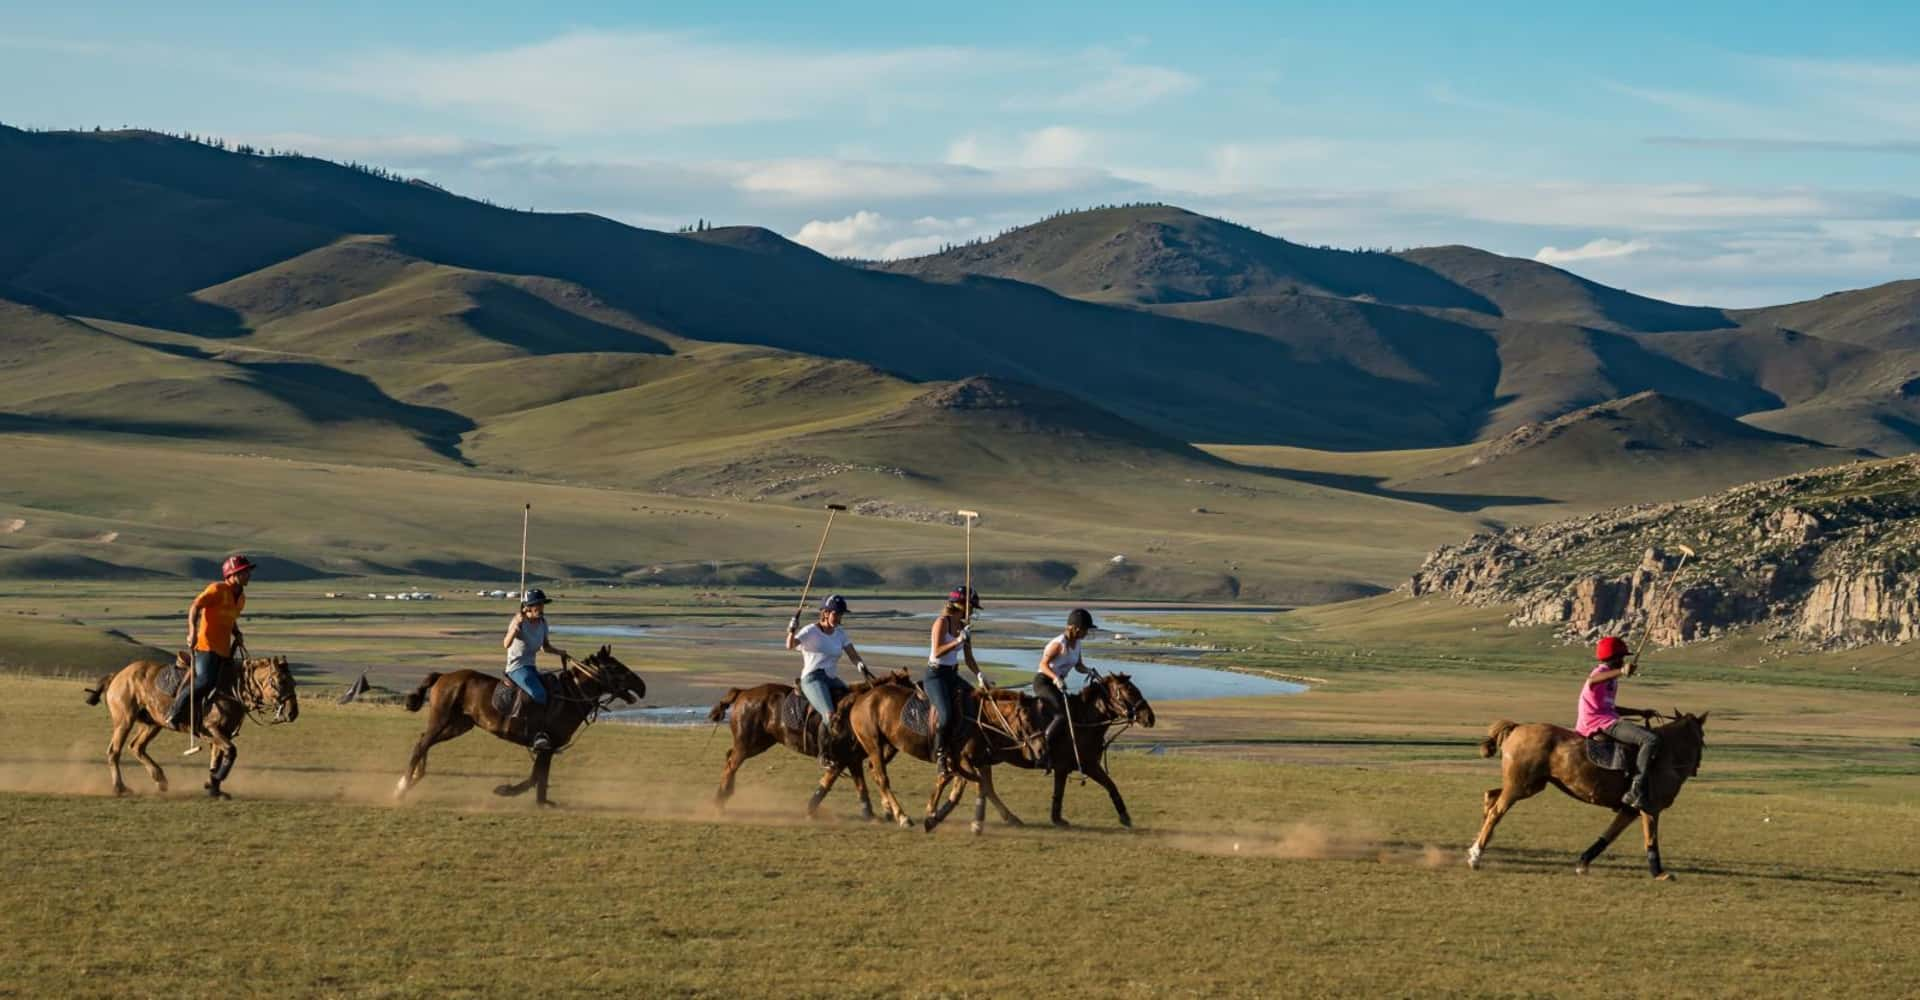 THE GENGHIS KHAN POLO CLUB - The Pavilions Mongolia